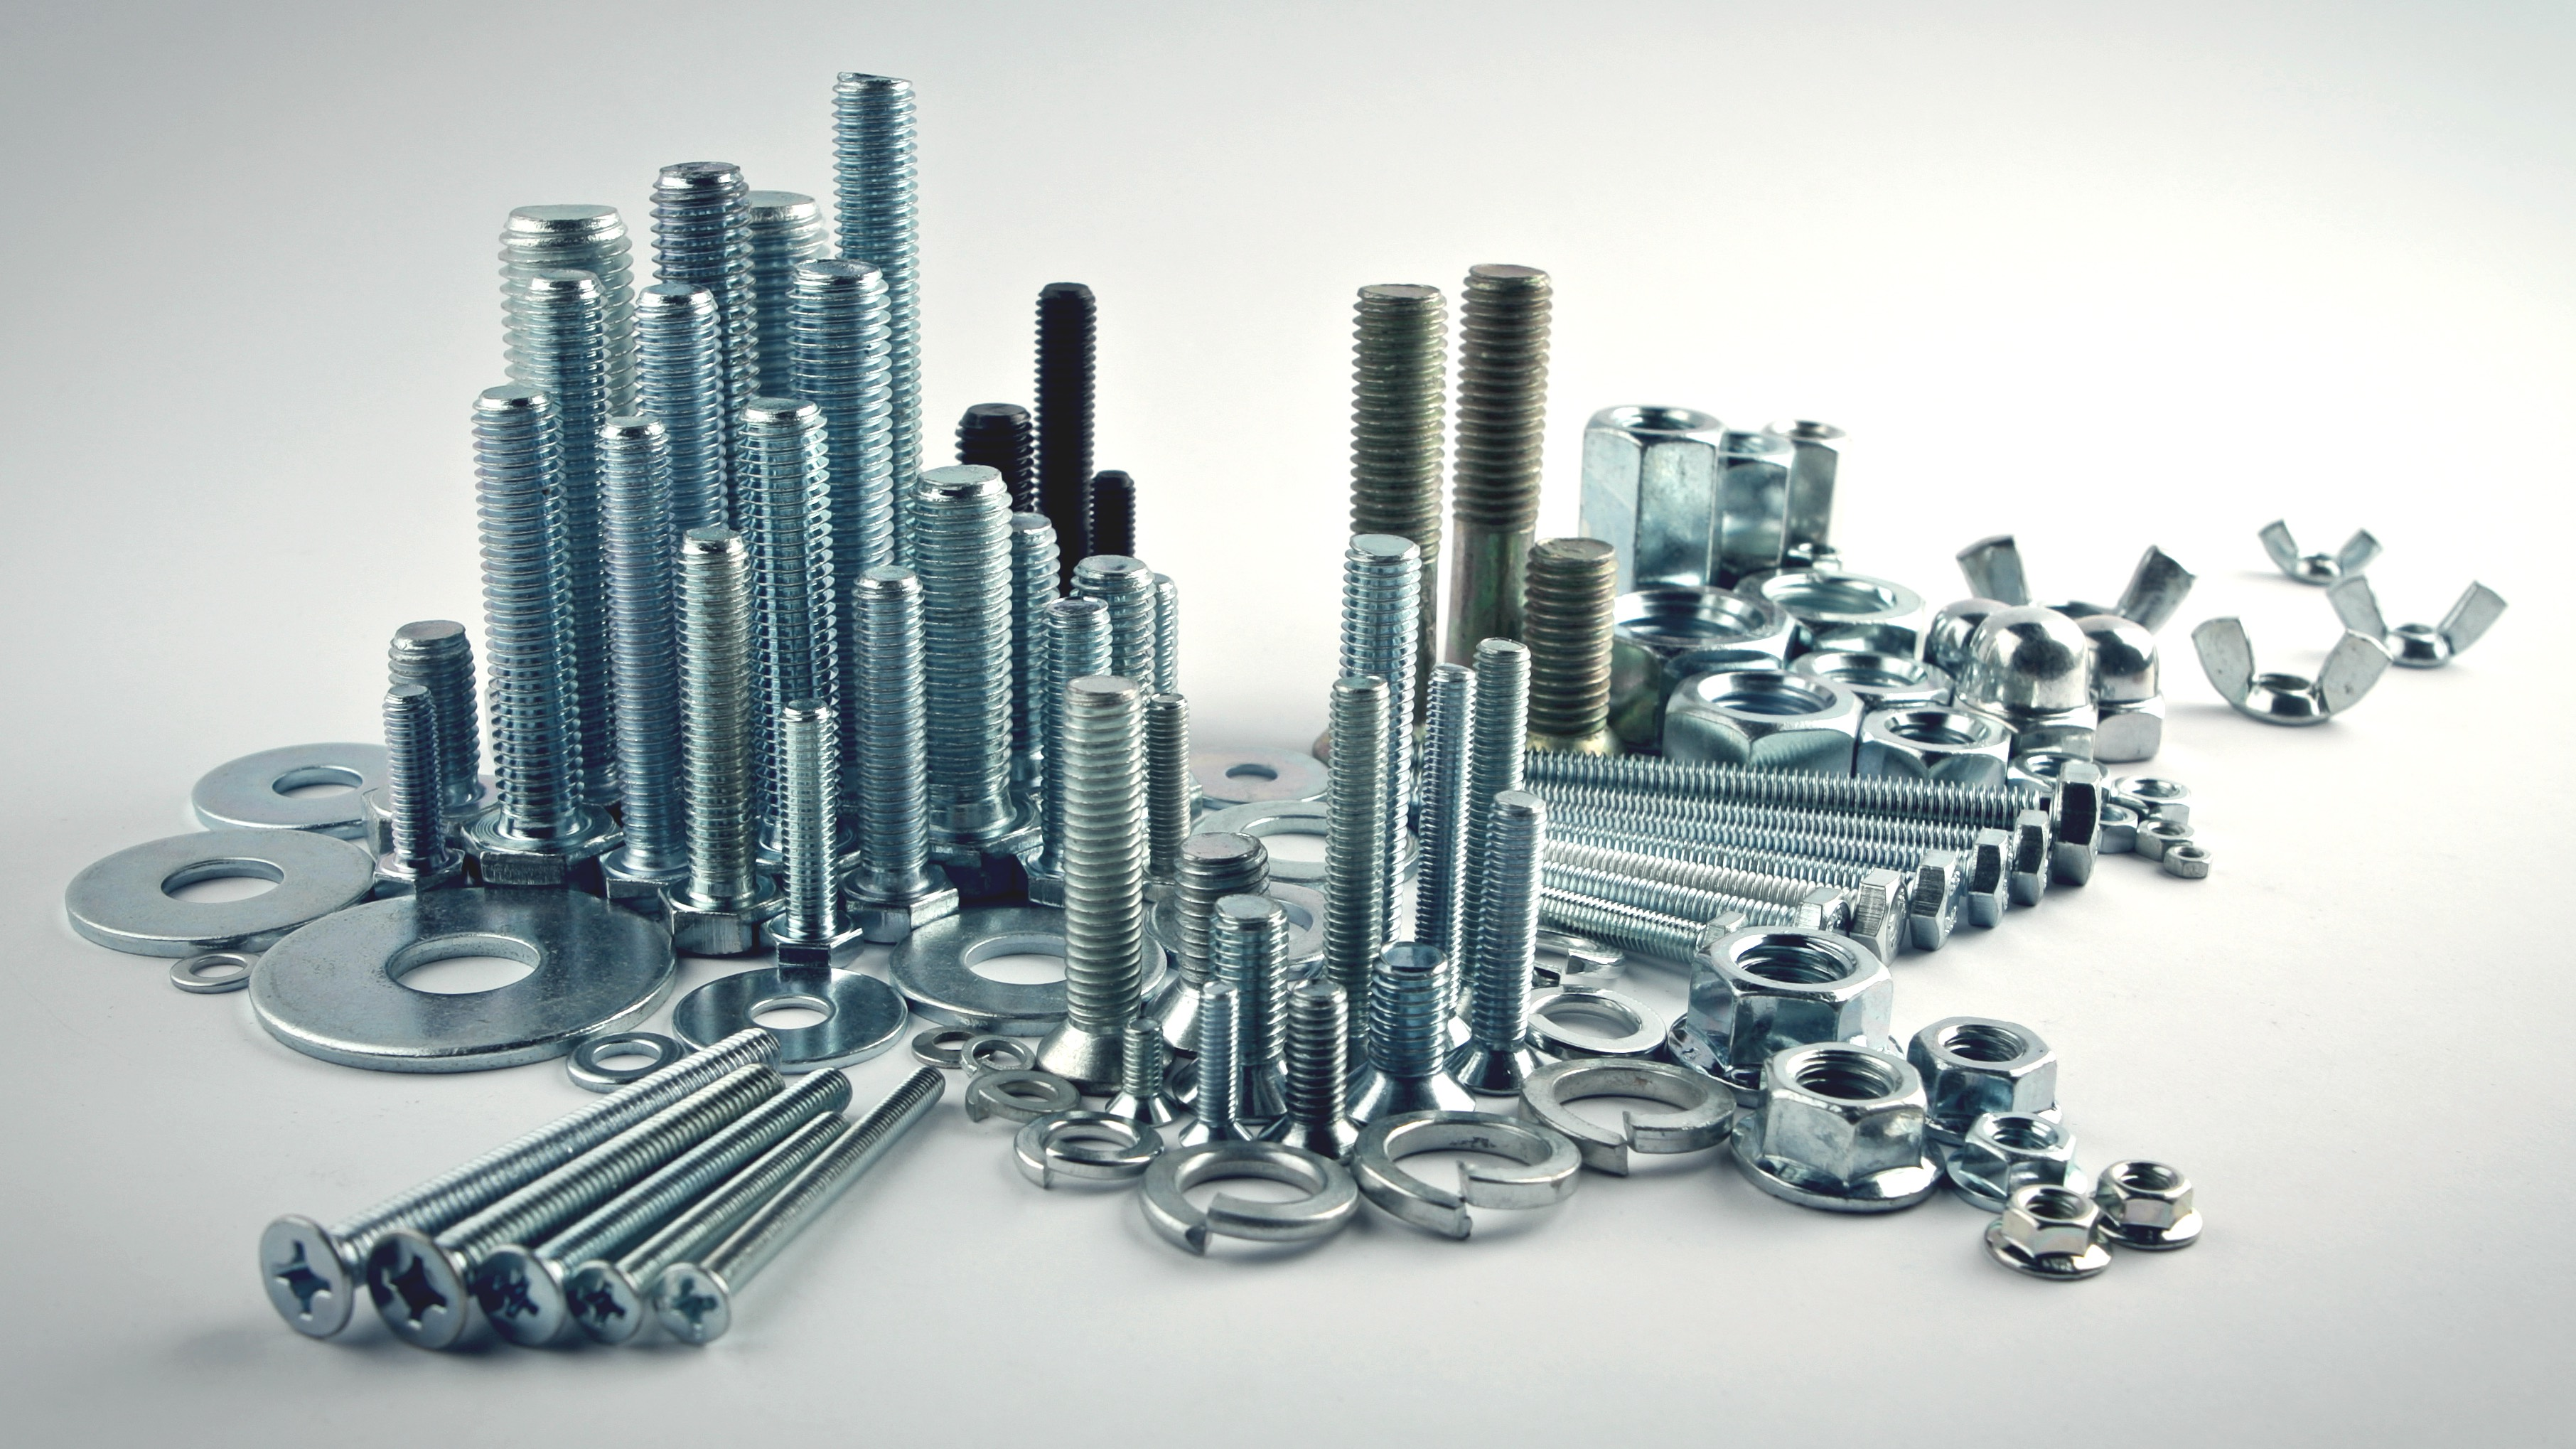 Tengco Fasteners - Global Sourcing for Custom Manufacturing